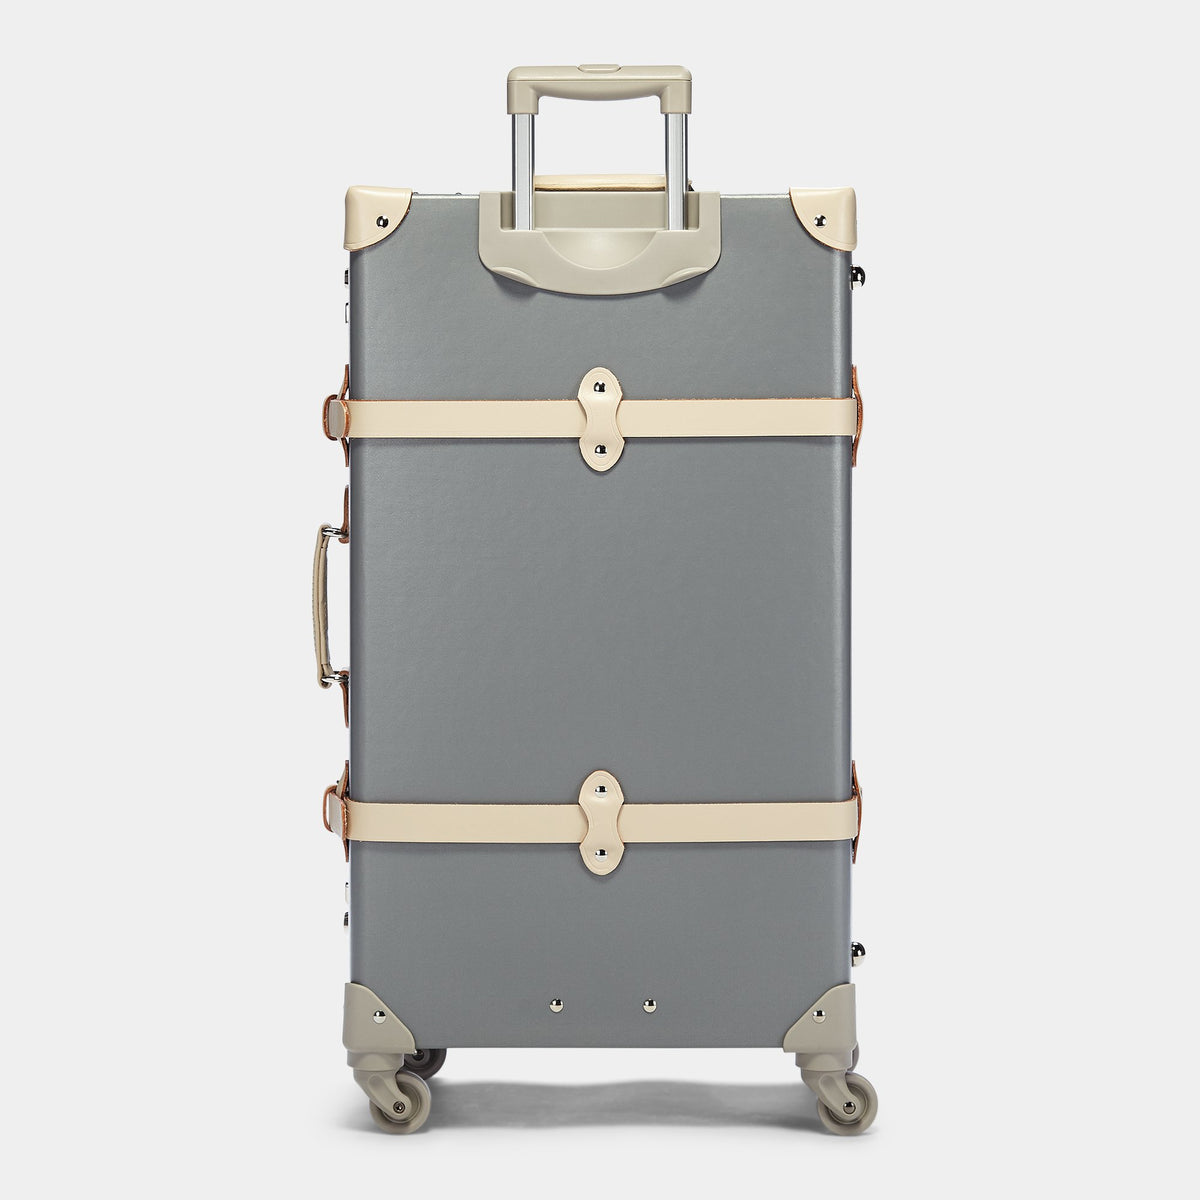 The Botanist Spinner in Grey - Vintage-Inspired Suitcase - Exterior back with Extendable Handle